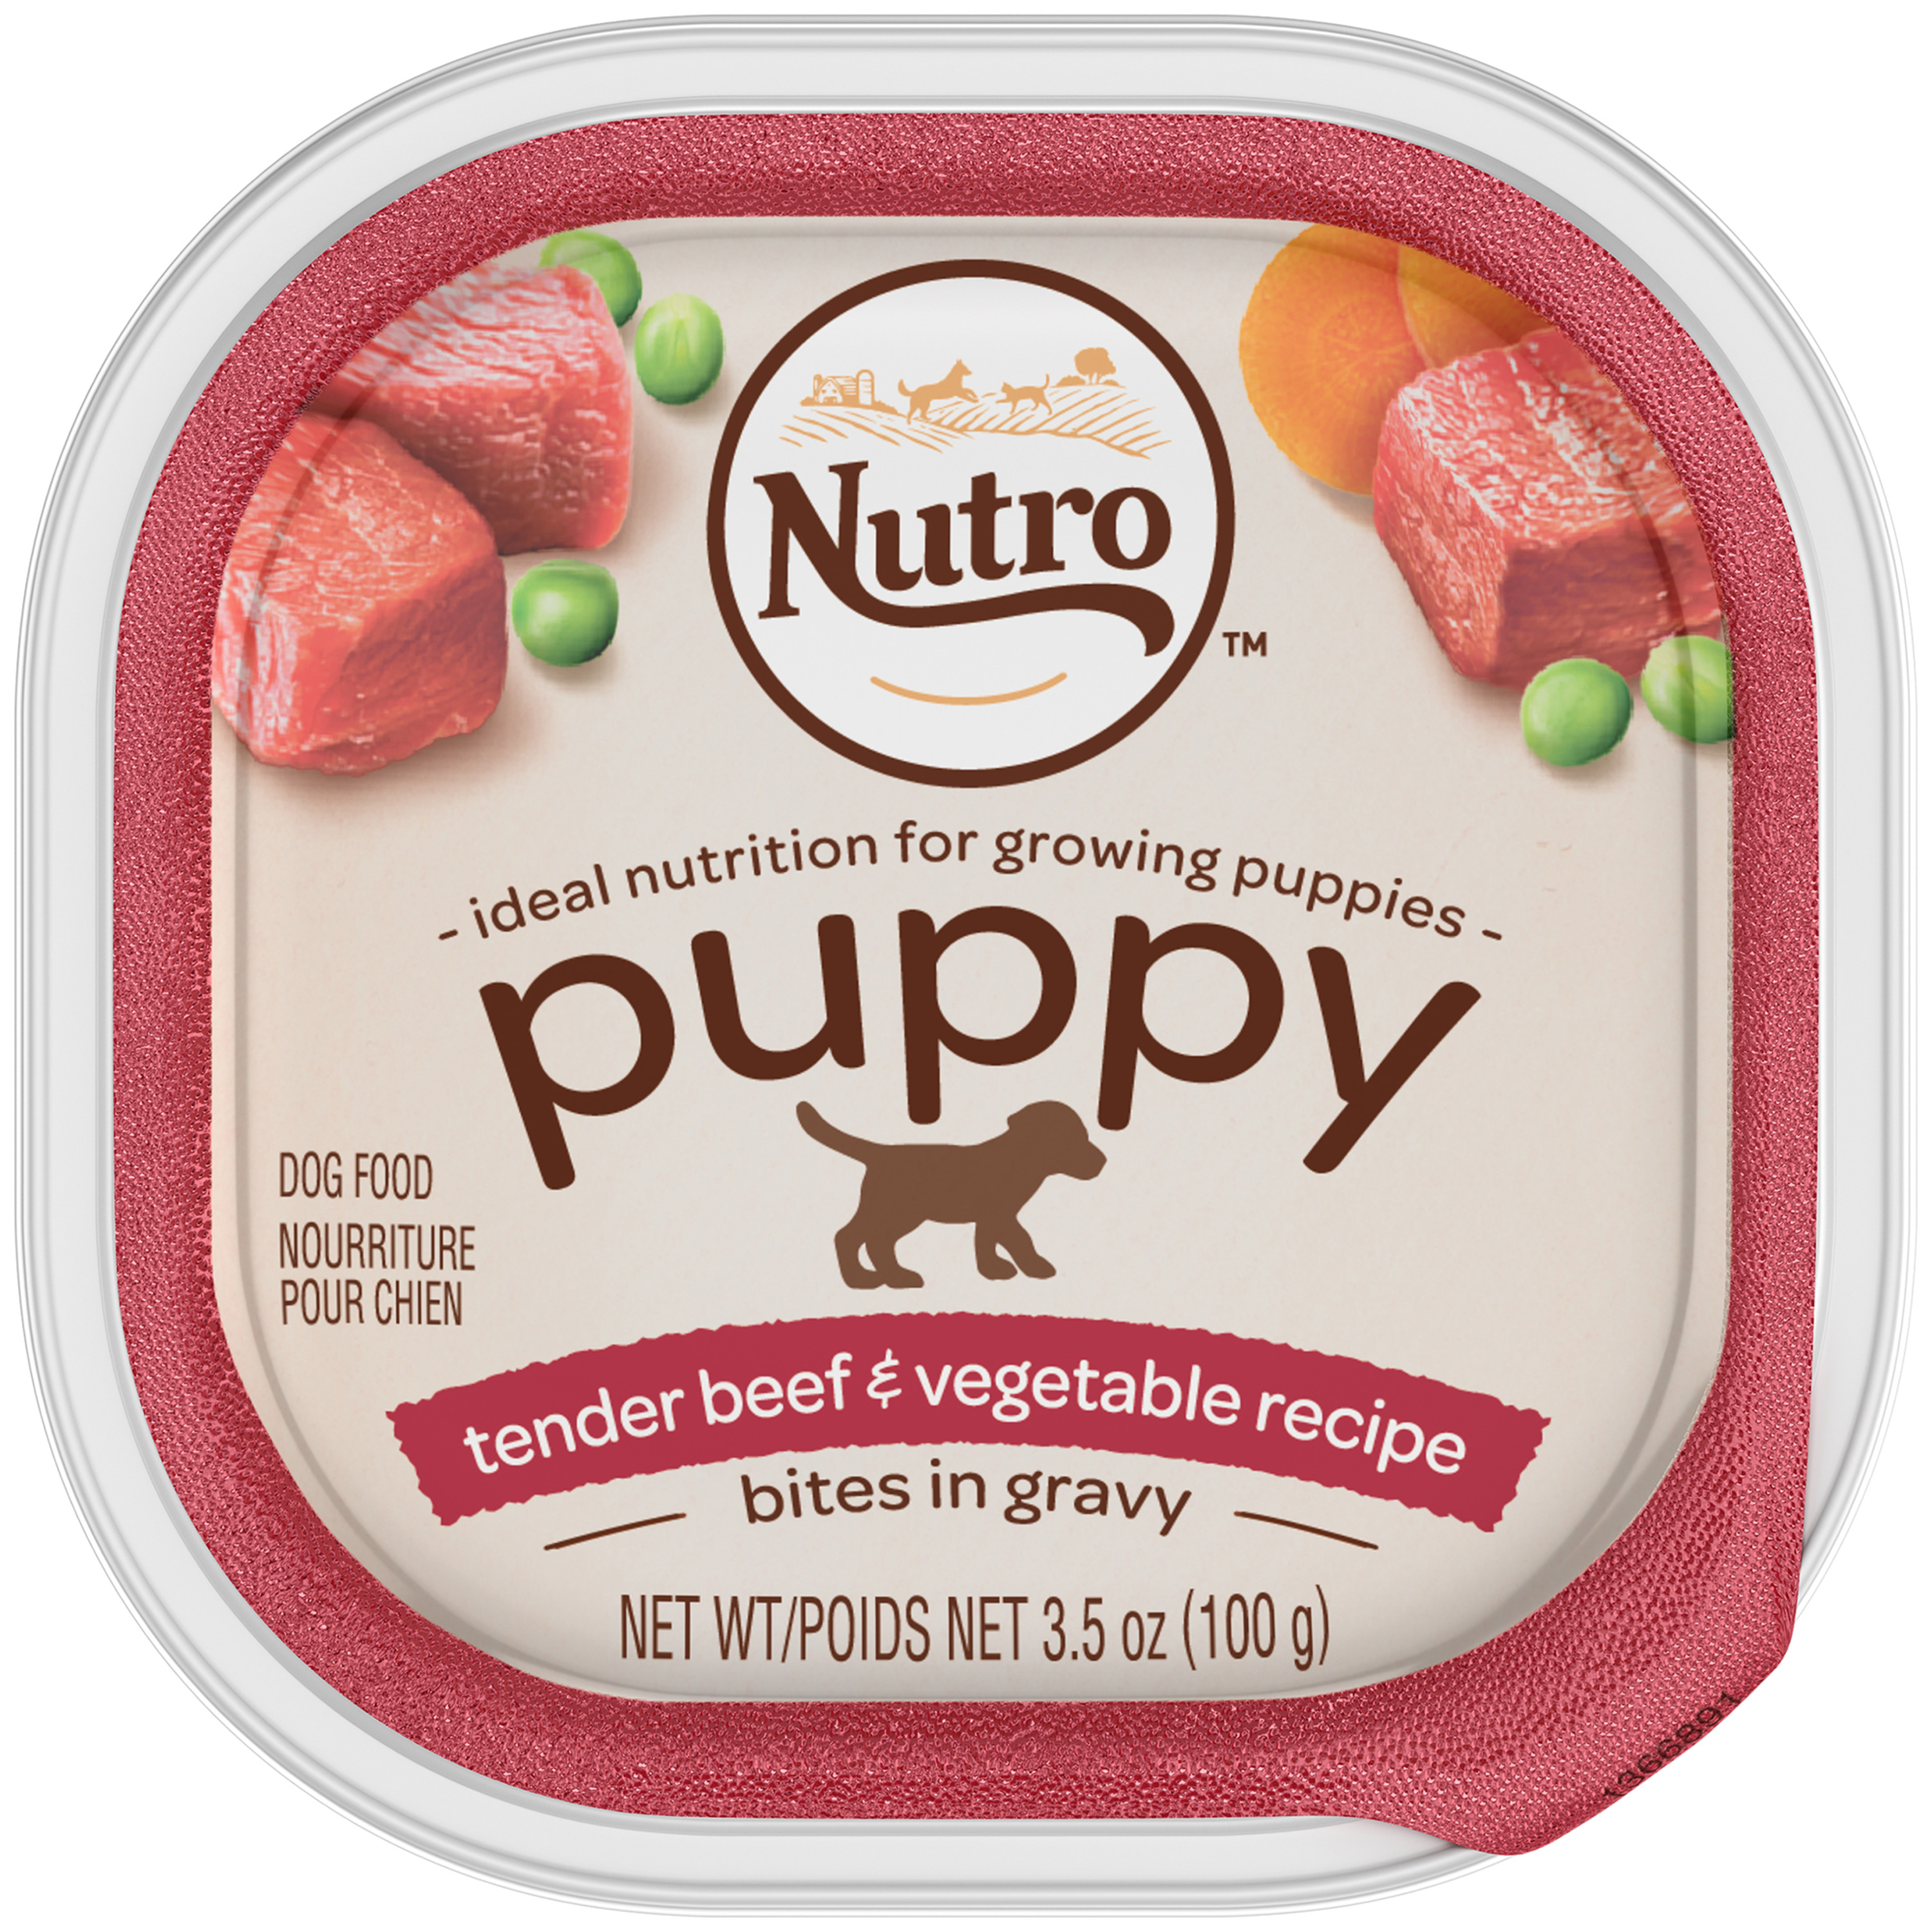 Nutro Puppy Wet Dog Food, Tender Beef & Vegetable Recipe Cuts in Gravy, 3.5 Oz Trays (Pack of 24)